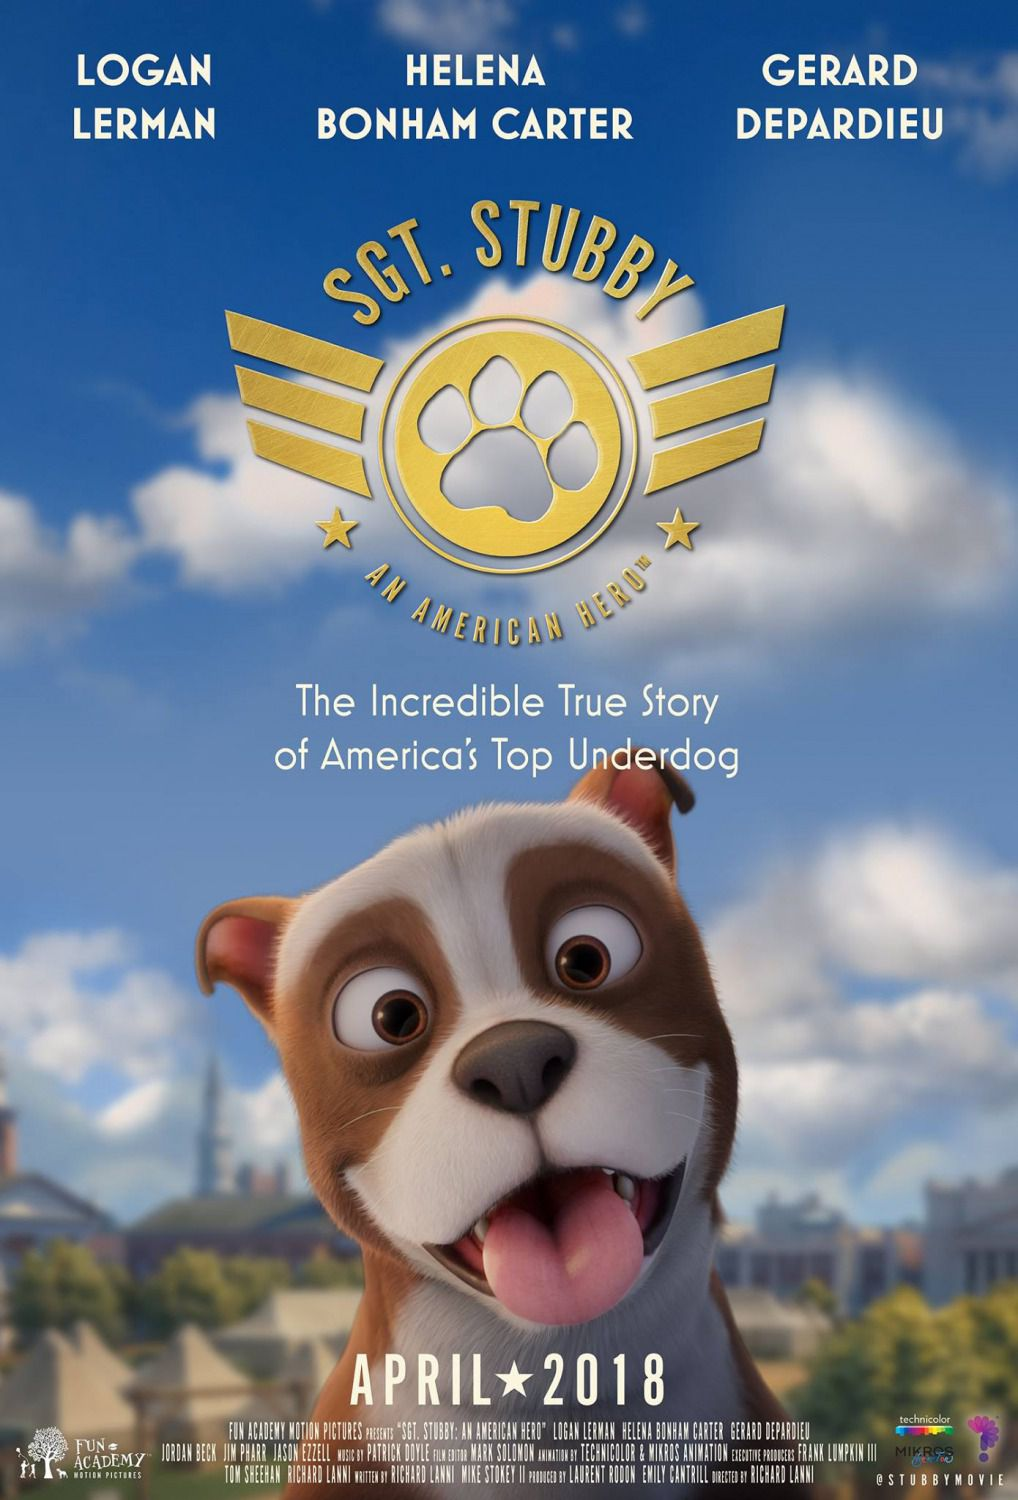 Sgt Stubby an American Hero - animated film poster 2018